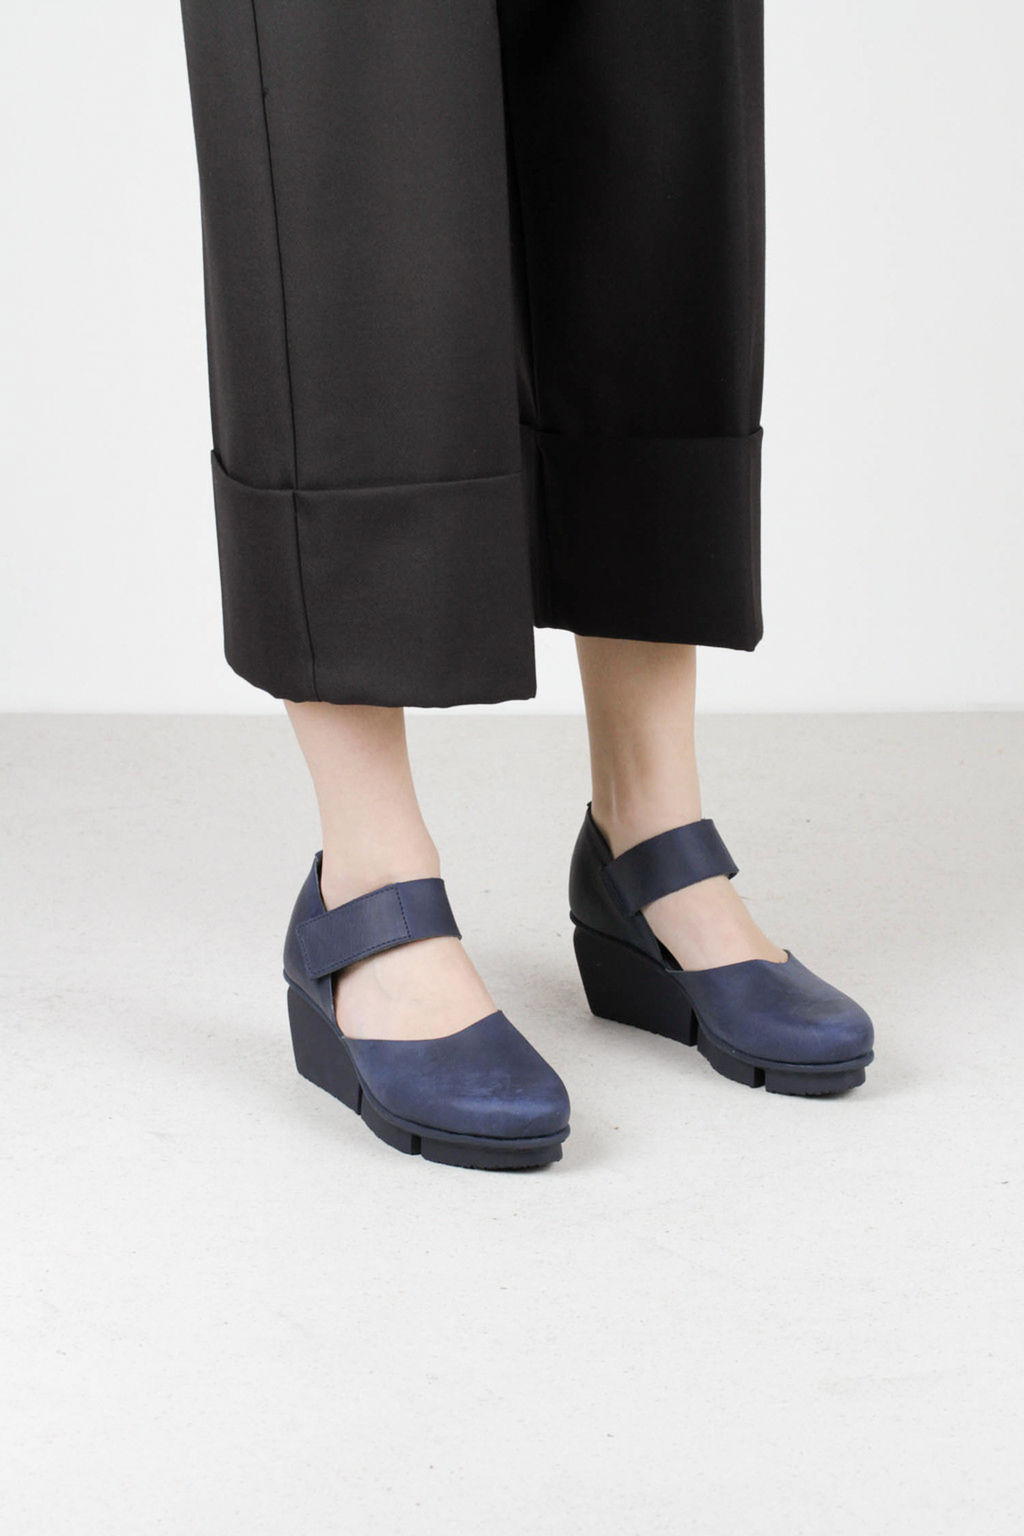 Trippen hostess navy pul leather shoes